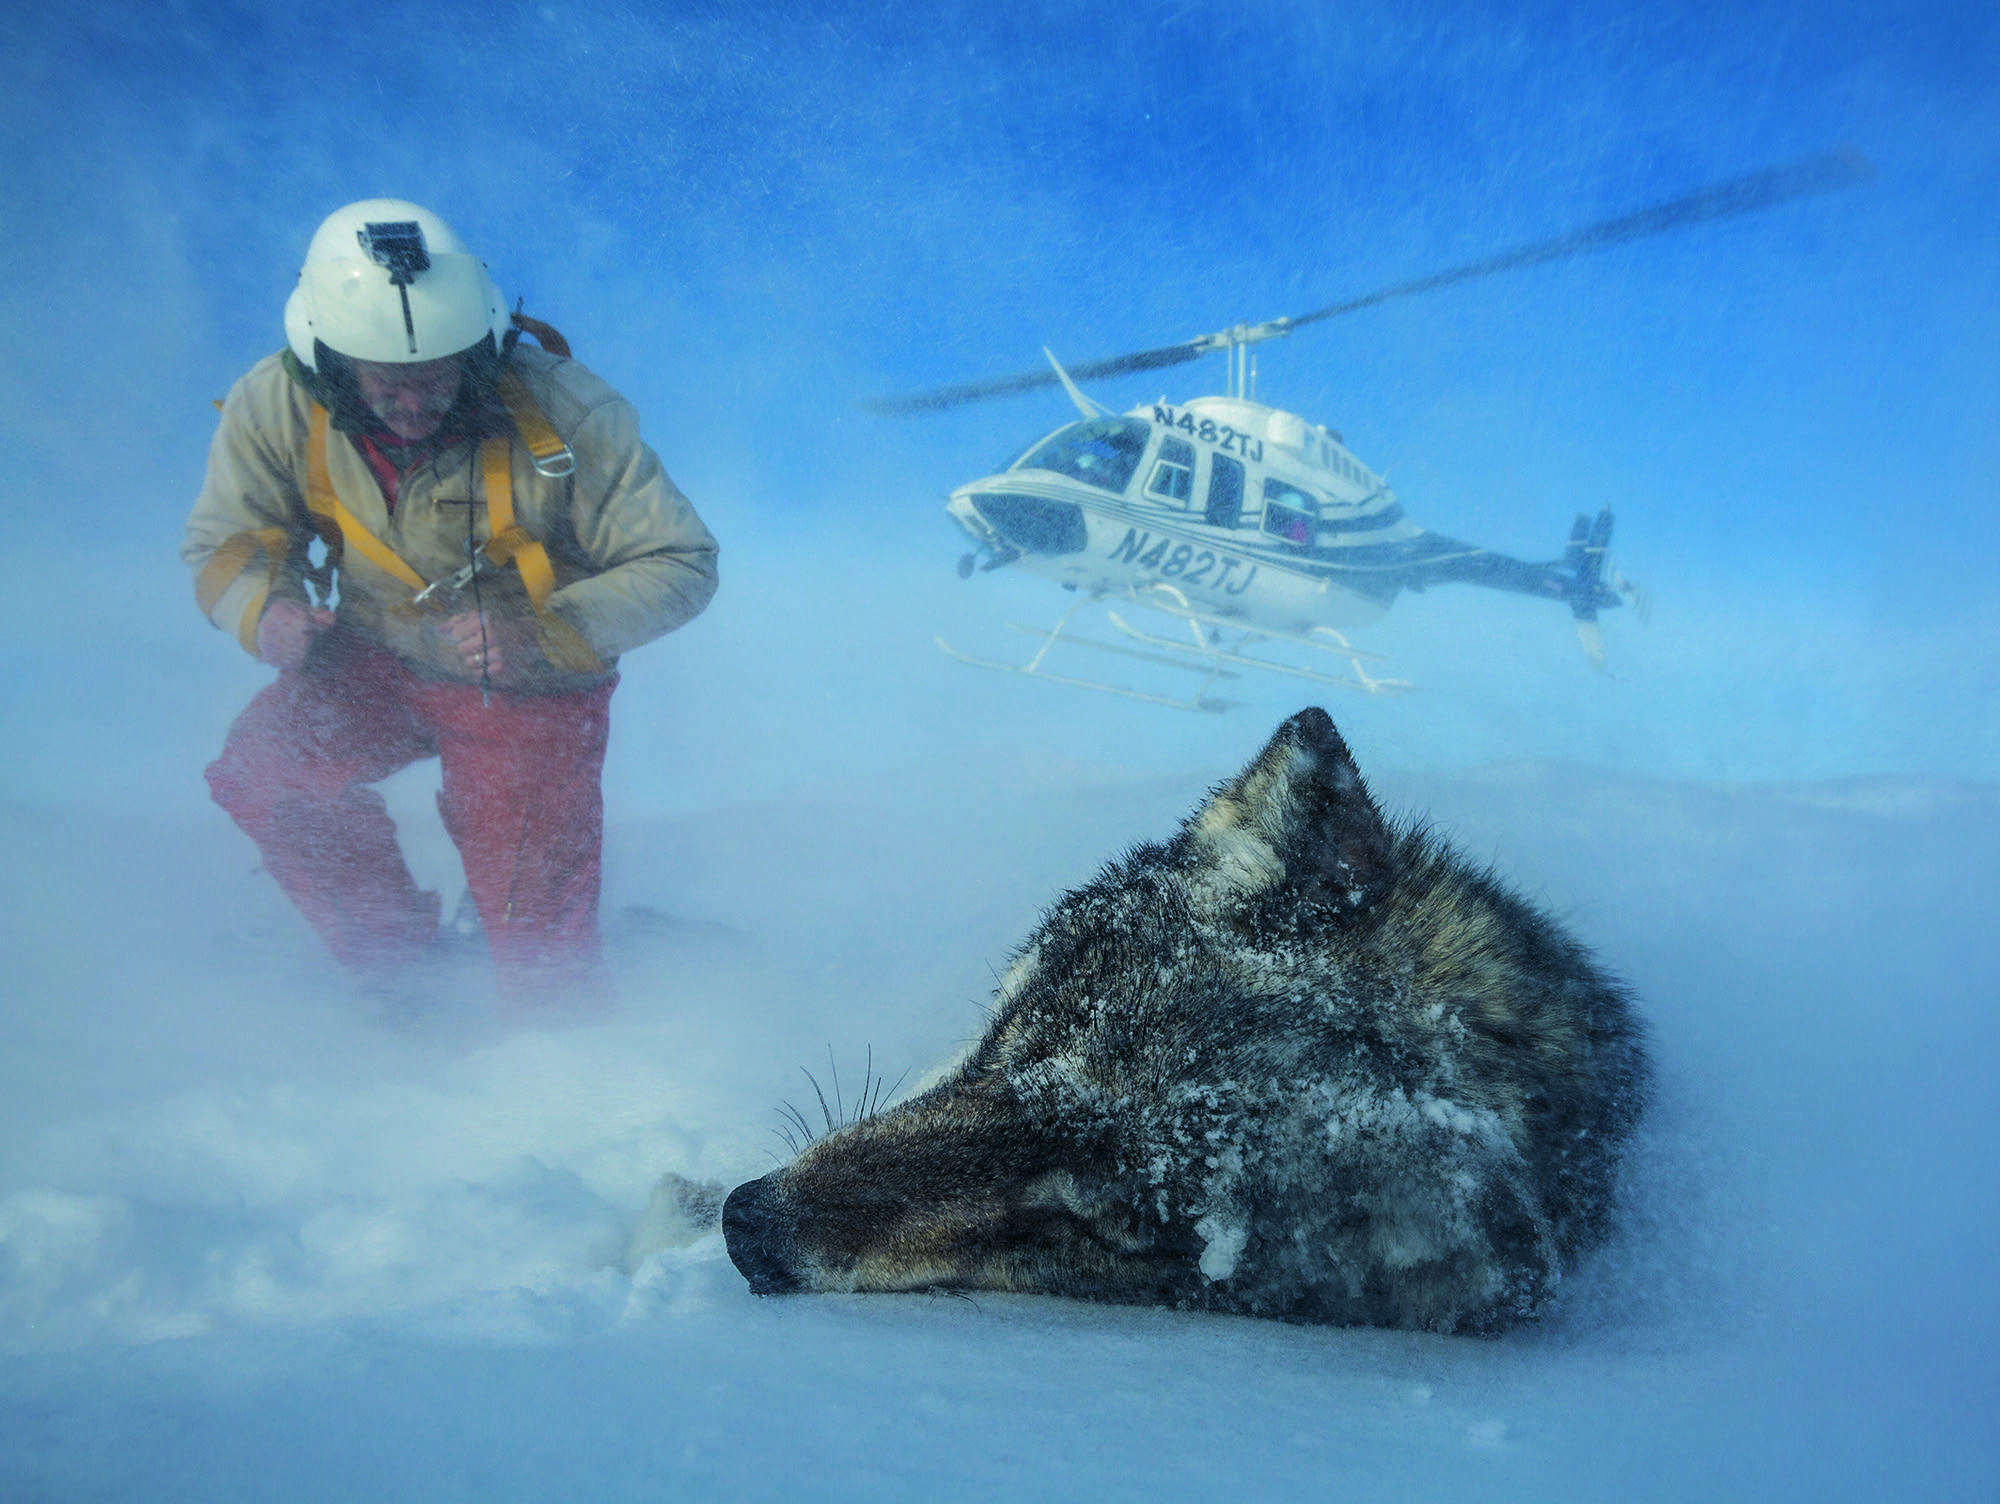 Biologist Doug Smith nears a tranquilized wolf